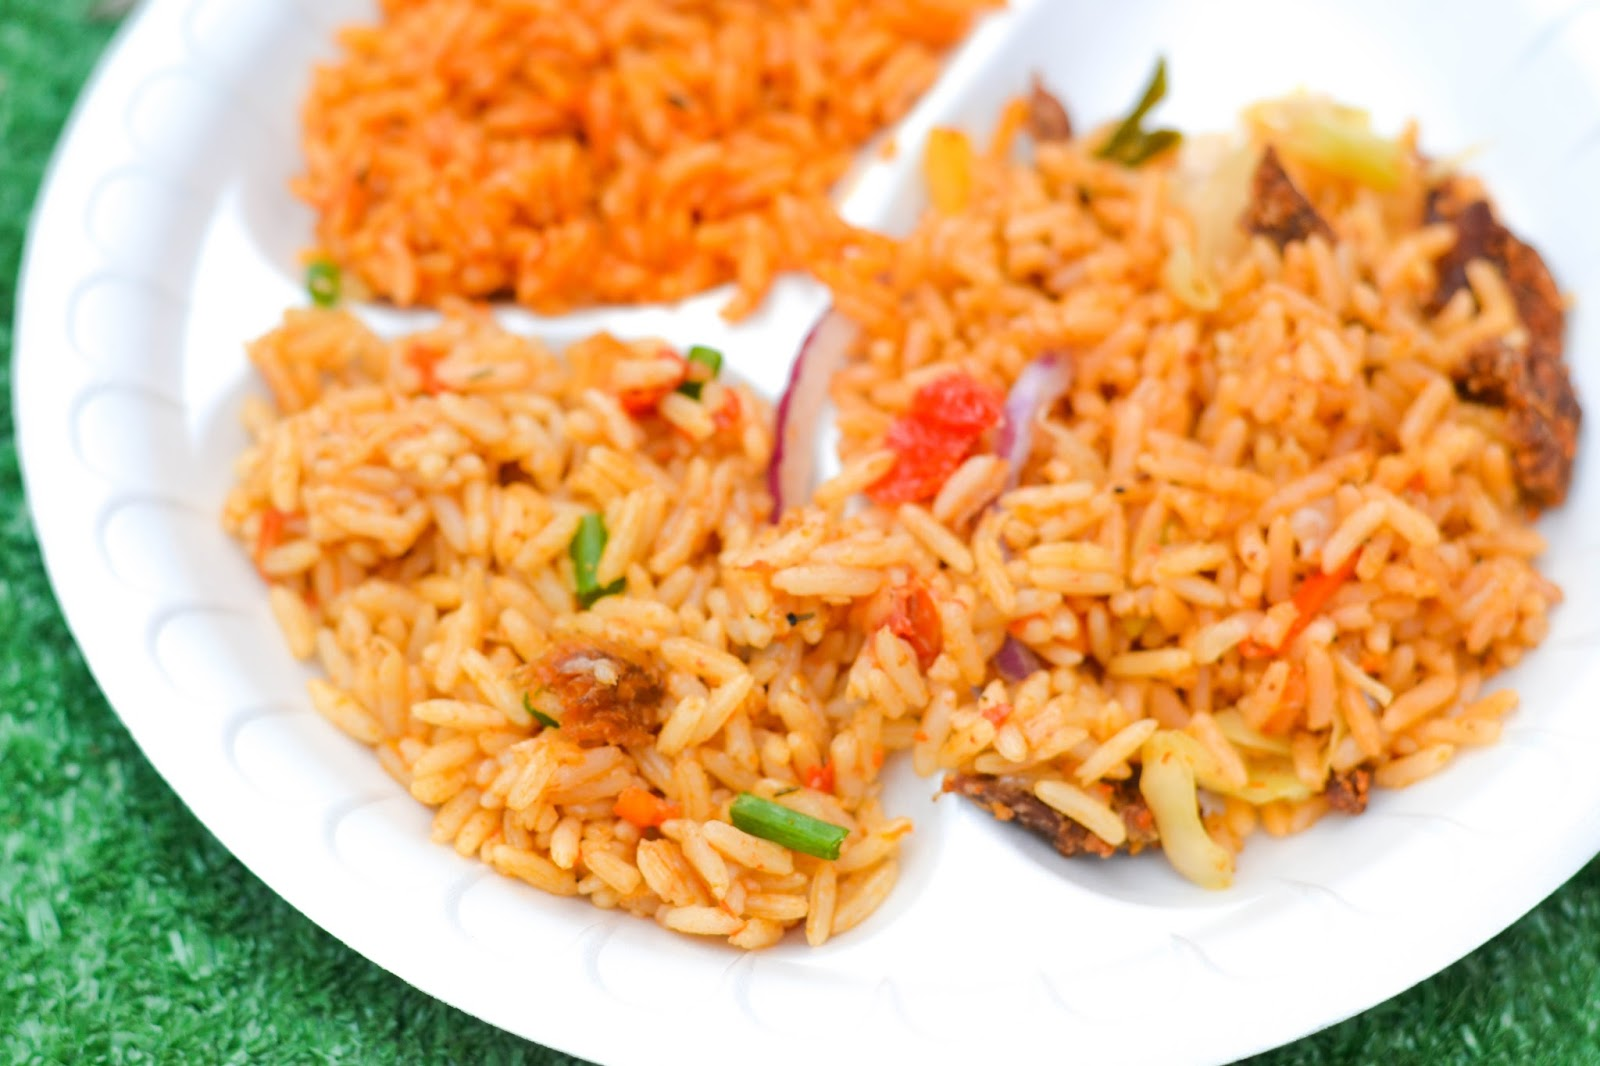 Party Jollof Rice, Suya Jollof Rice and Coconut Jollof Rice